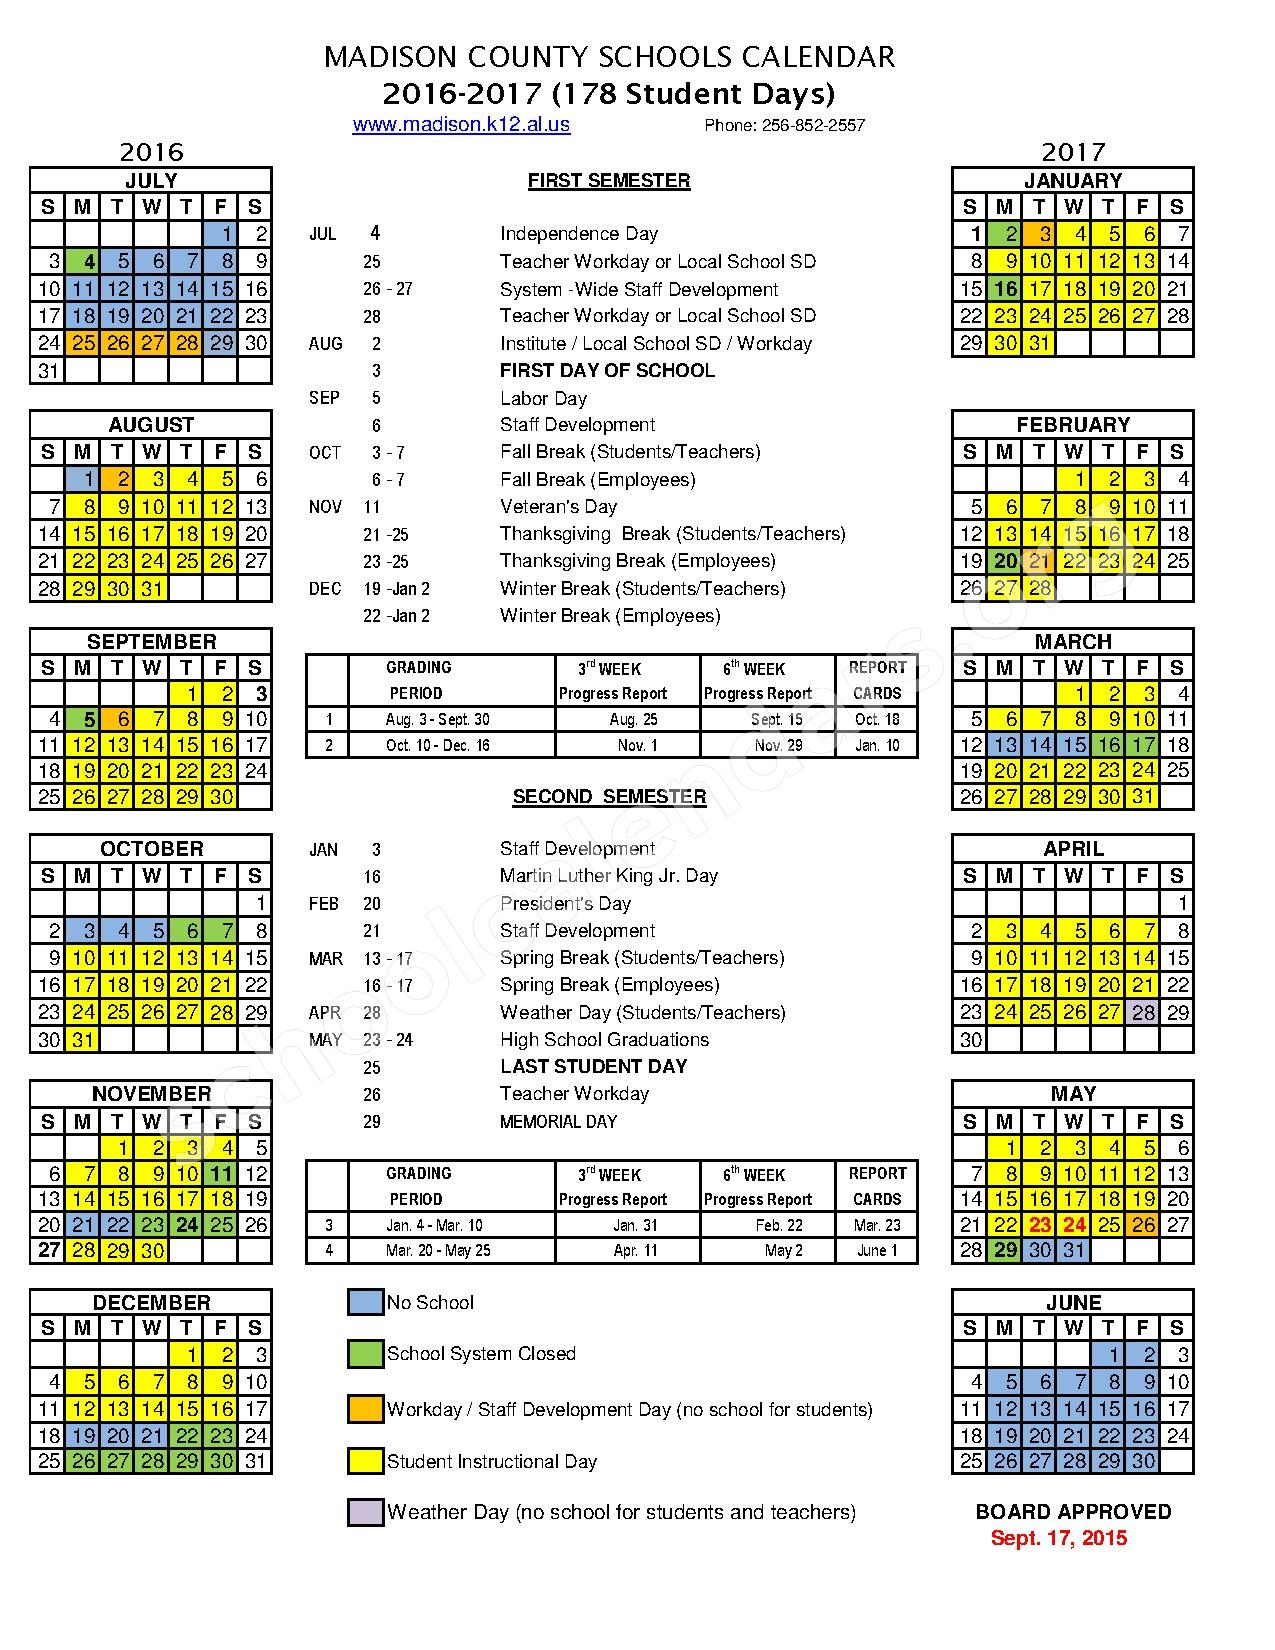 Meridianville Middle School Calendars – Hazel Green, AL